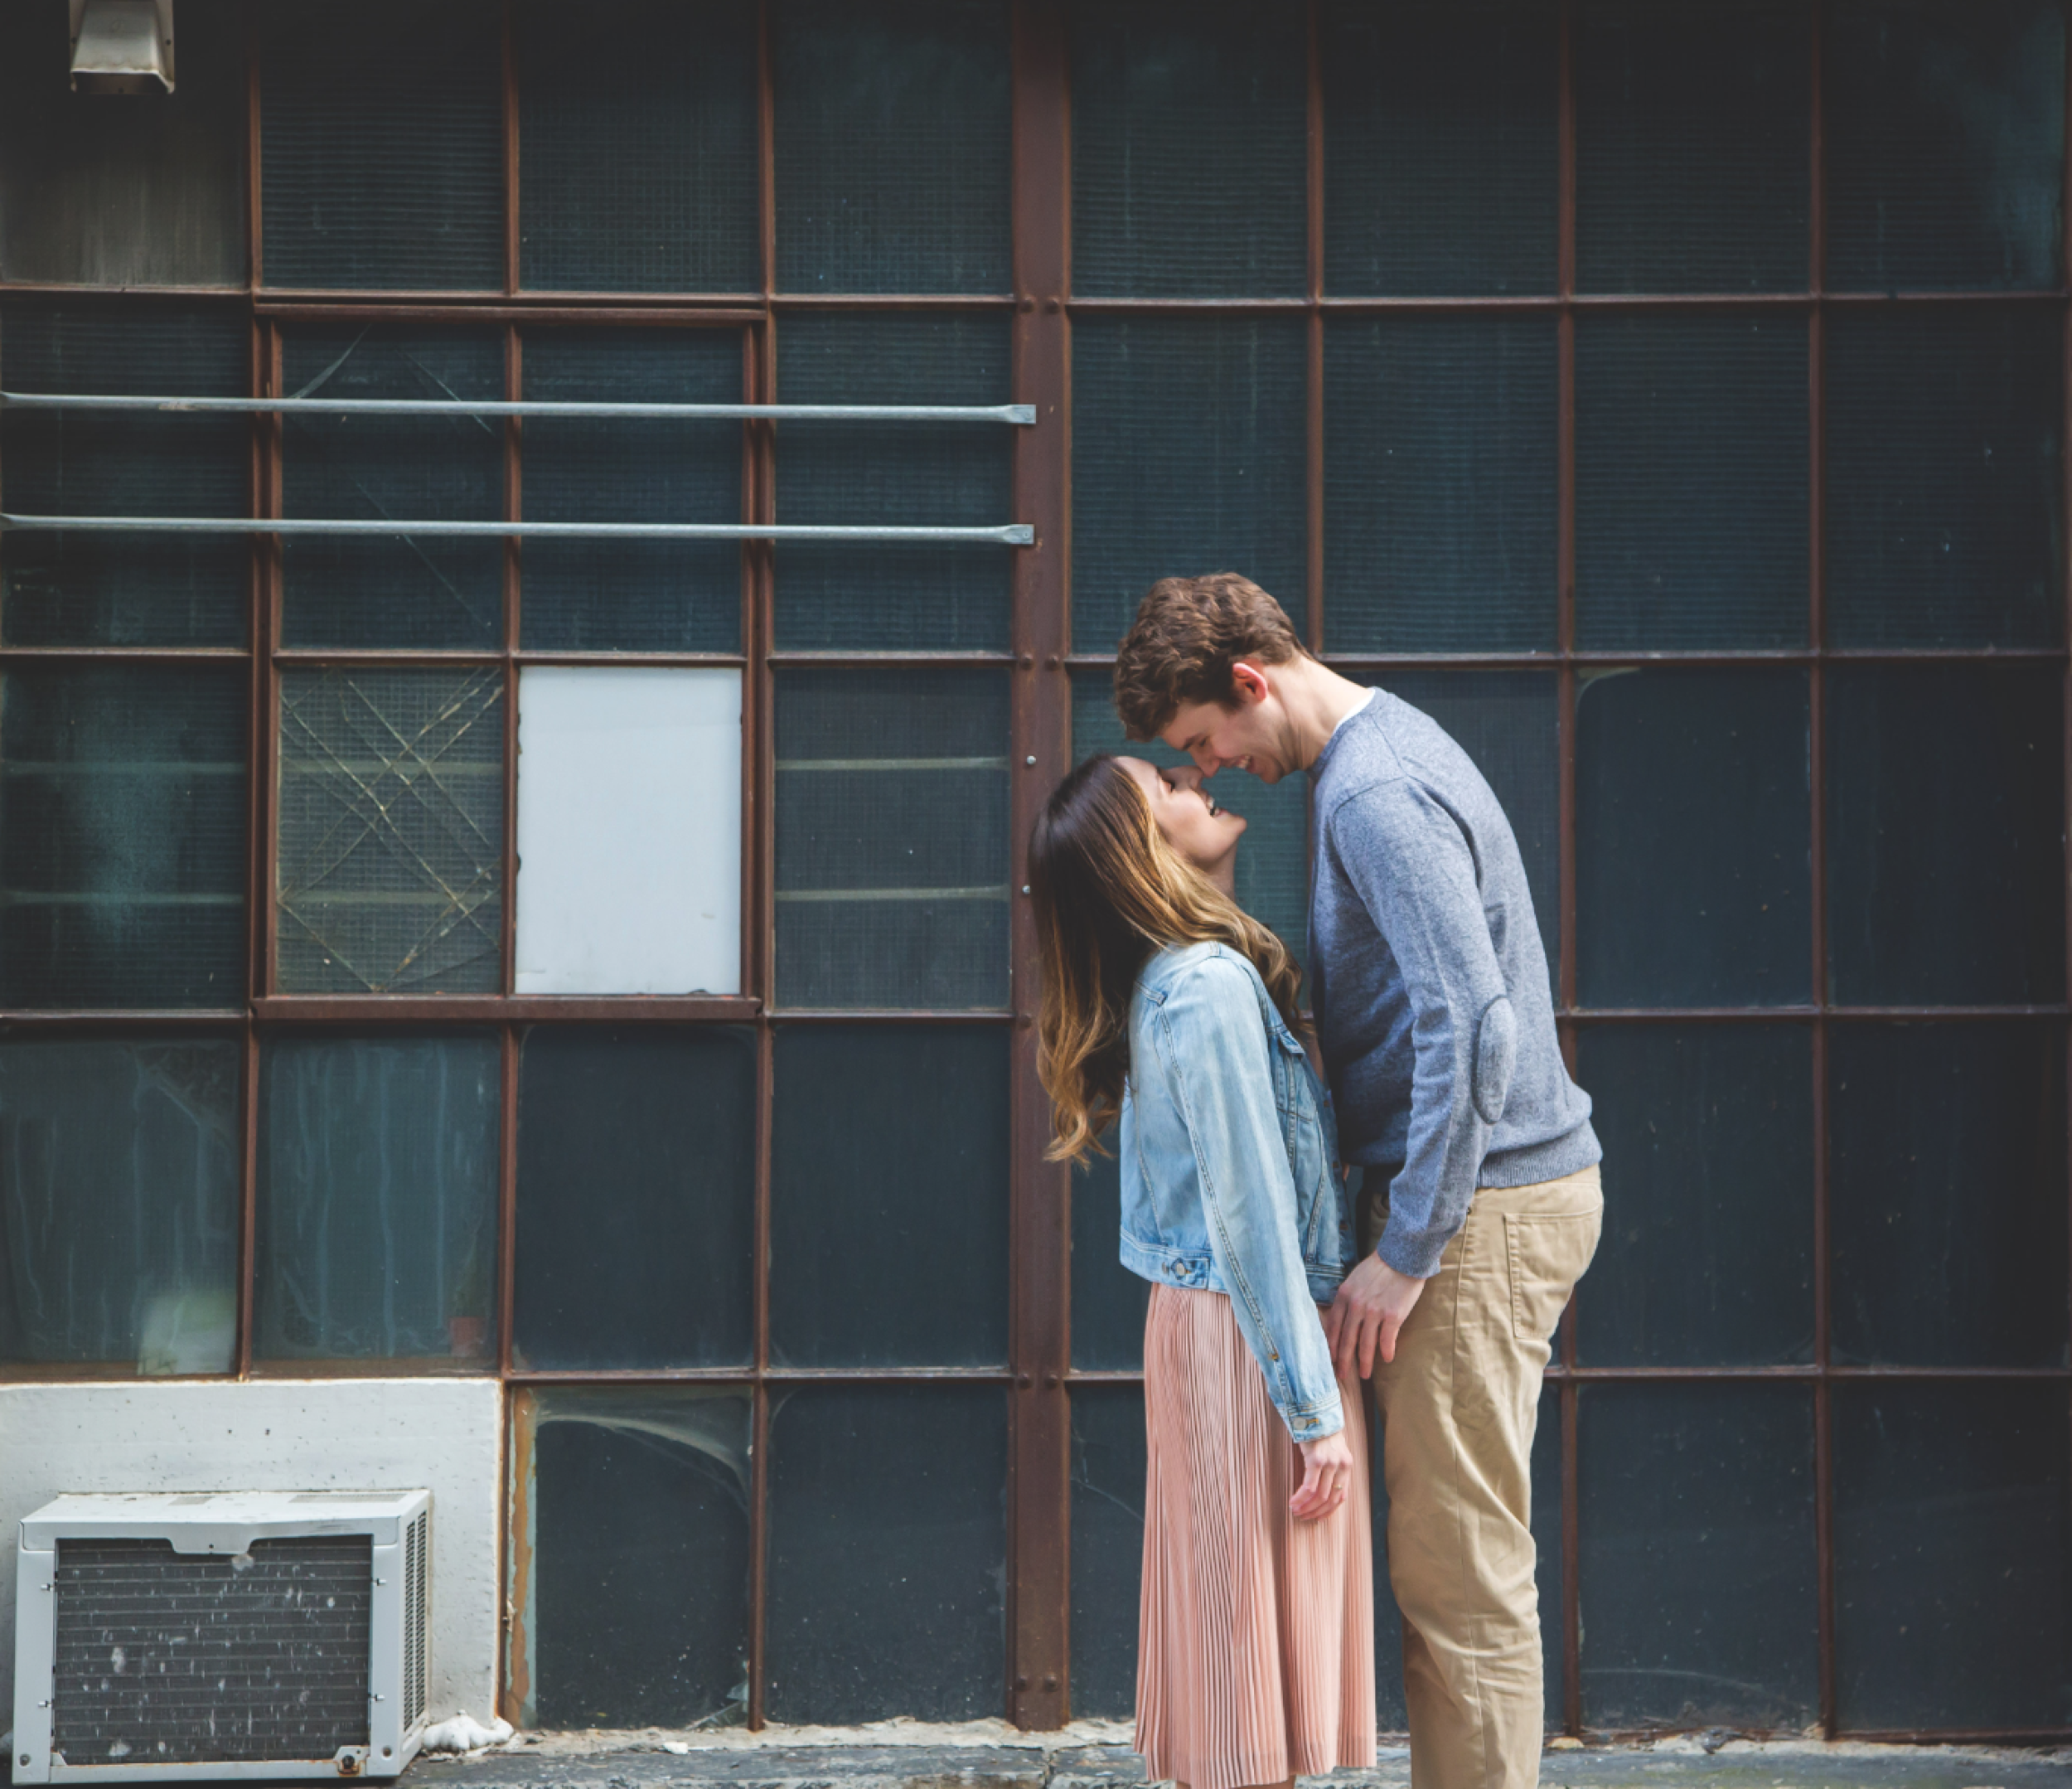 Engagement-Photos-Toronto-Corktown-Photographer-Wedding-Hamilton-GTA-Niagara-Oakville-Modern-Moments-by-Lauren-Engaged-Image-Photo5.png